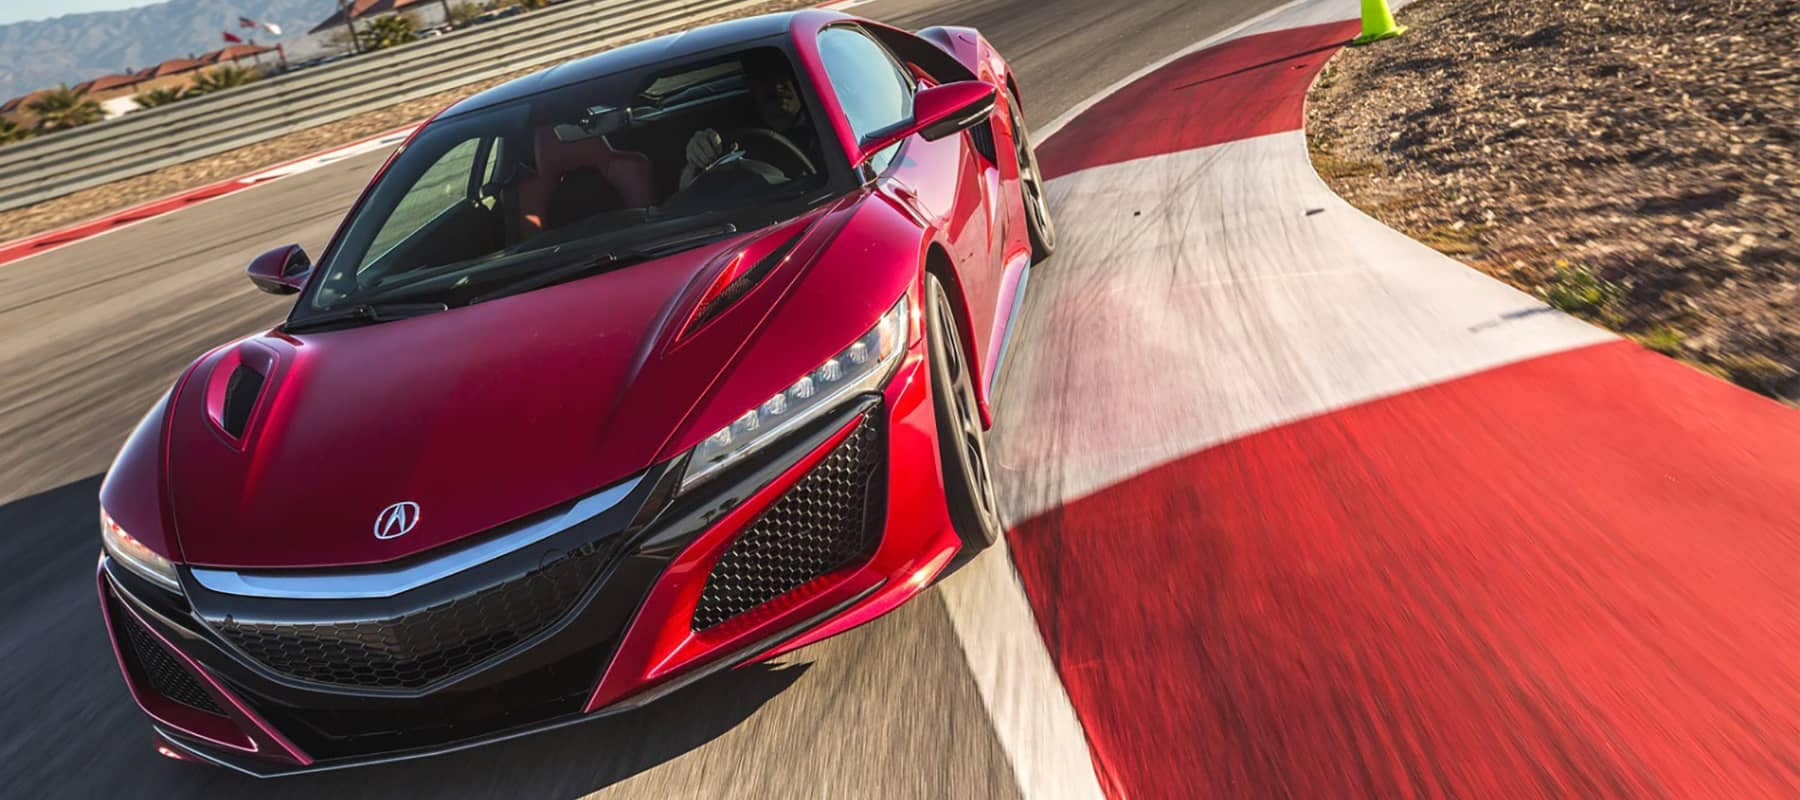 2018 Acura NSX On Track